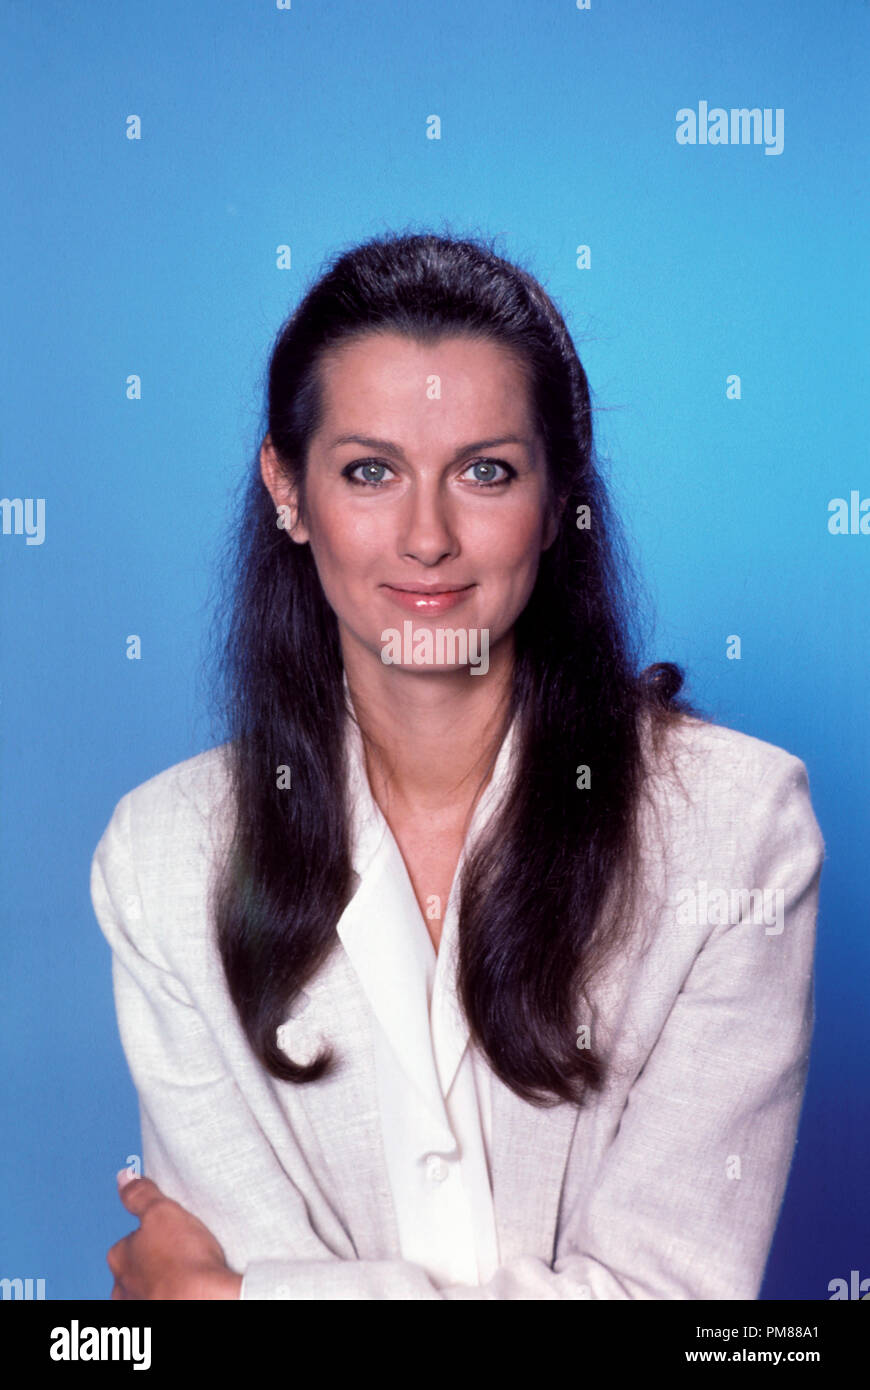 Veronica Hamel nudes (91 photo), Tits, Fappening, Twitter, swimsuit 2006